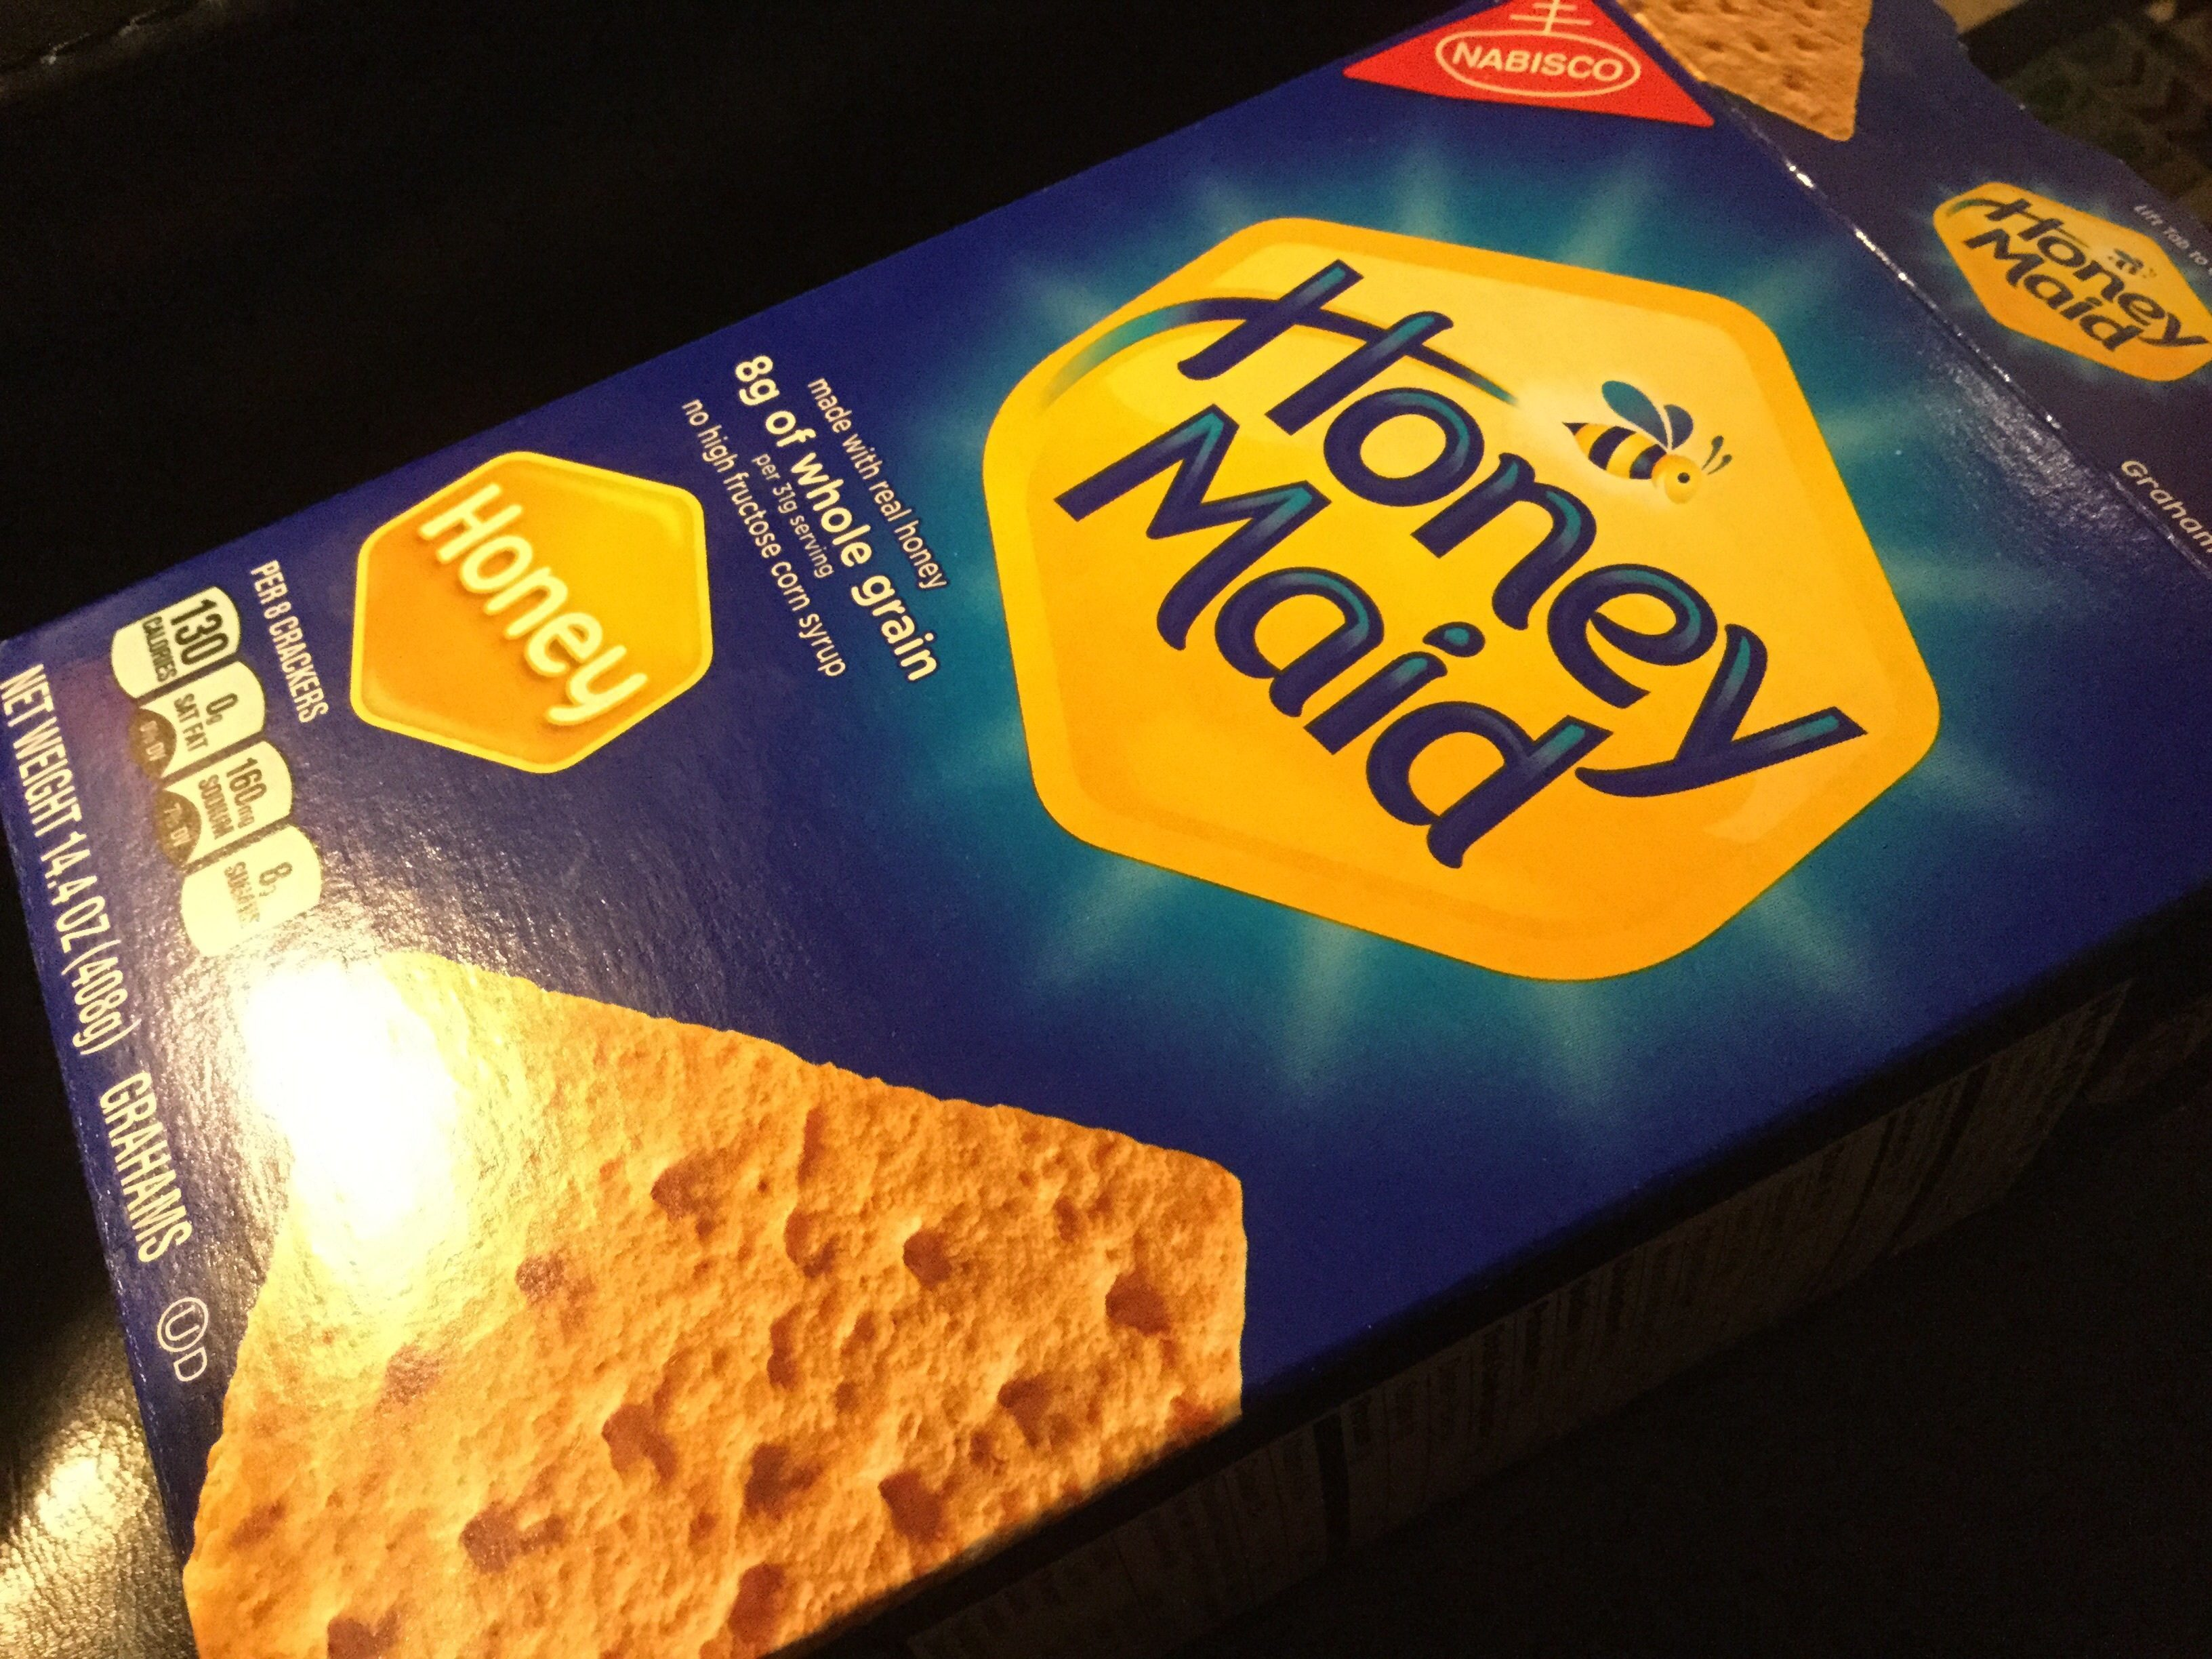 Long-term problem: Honey Maid graham crackers smell bad